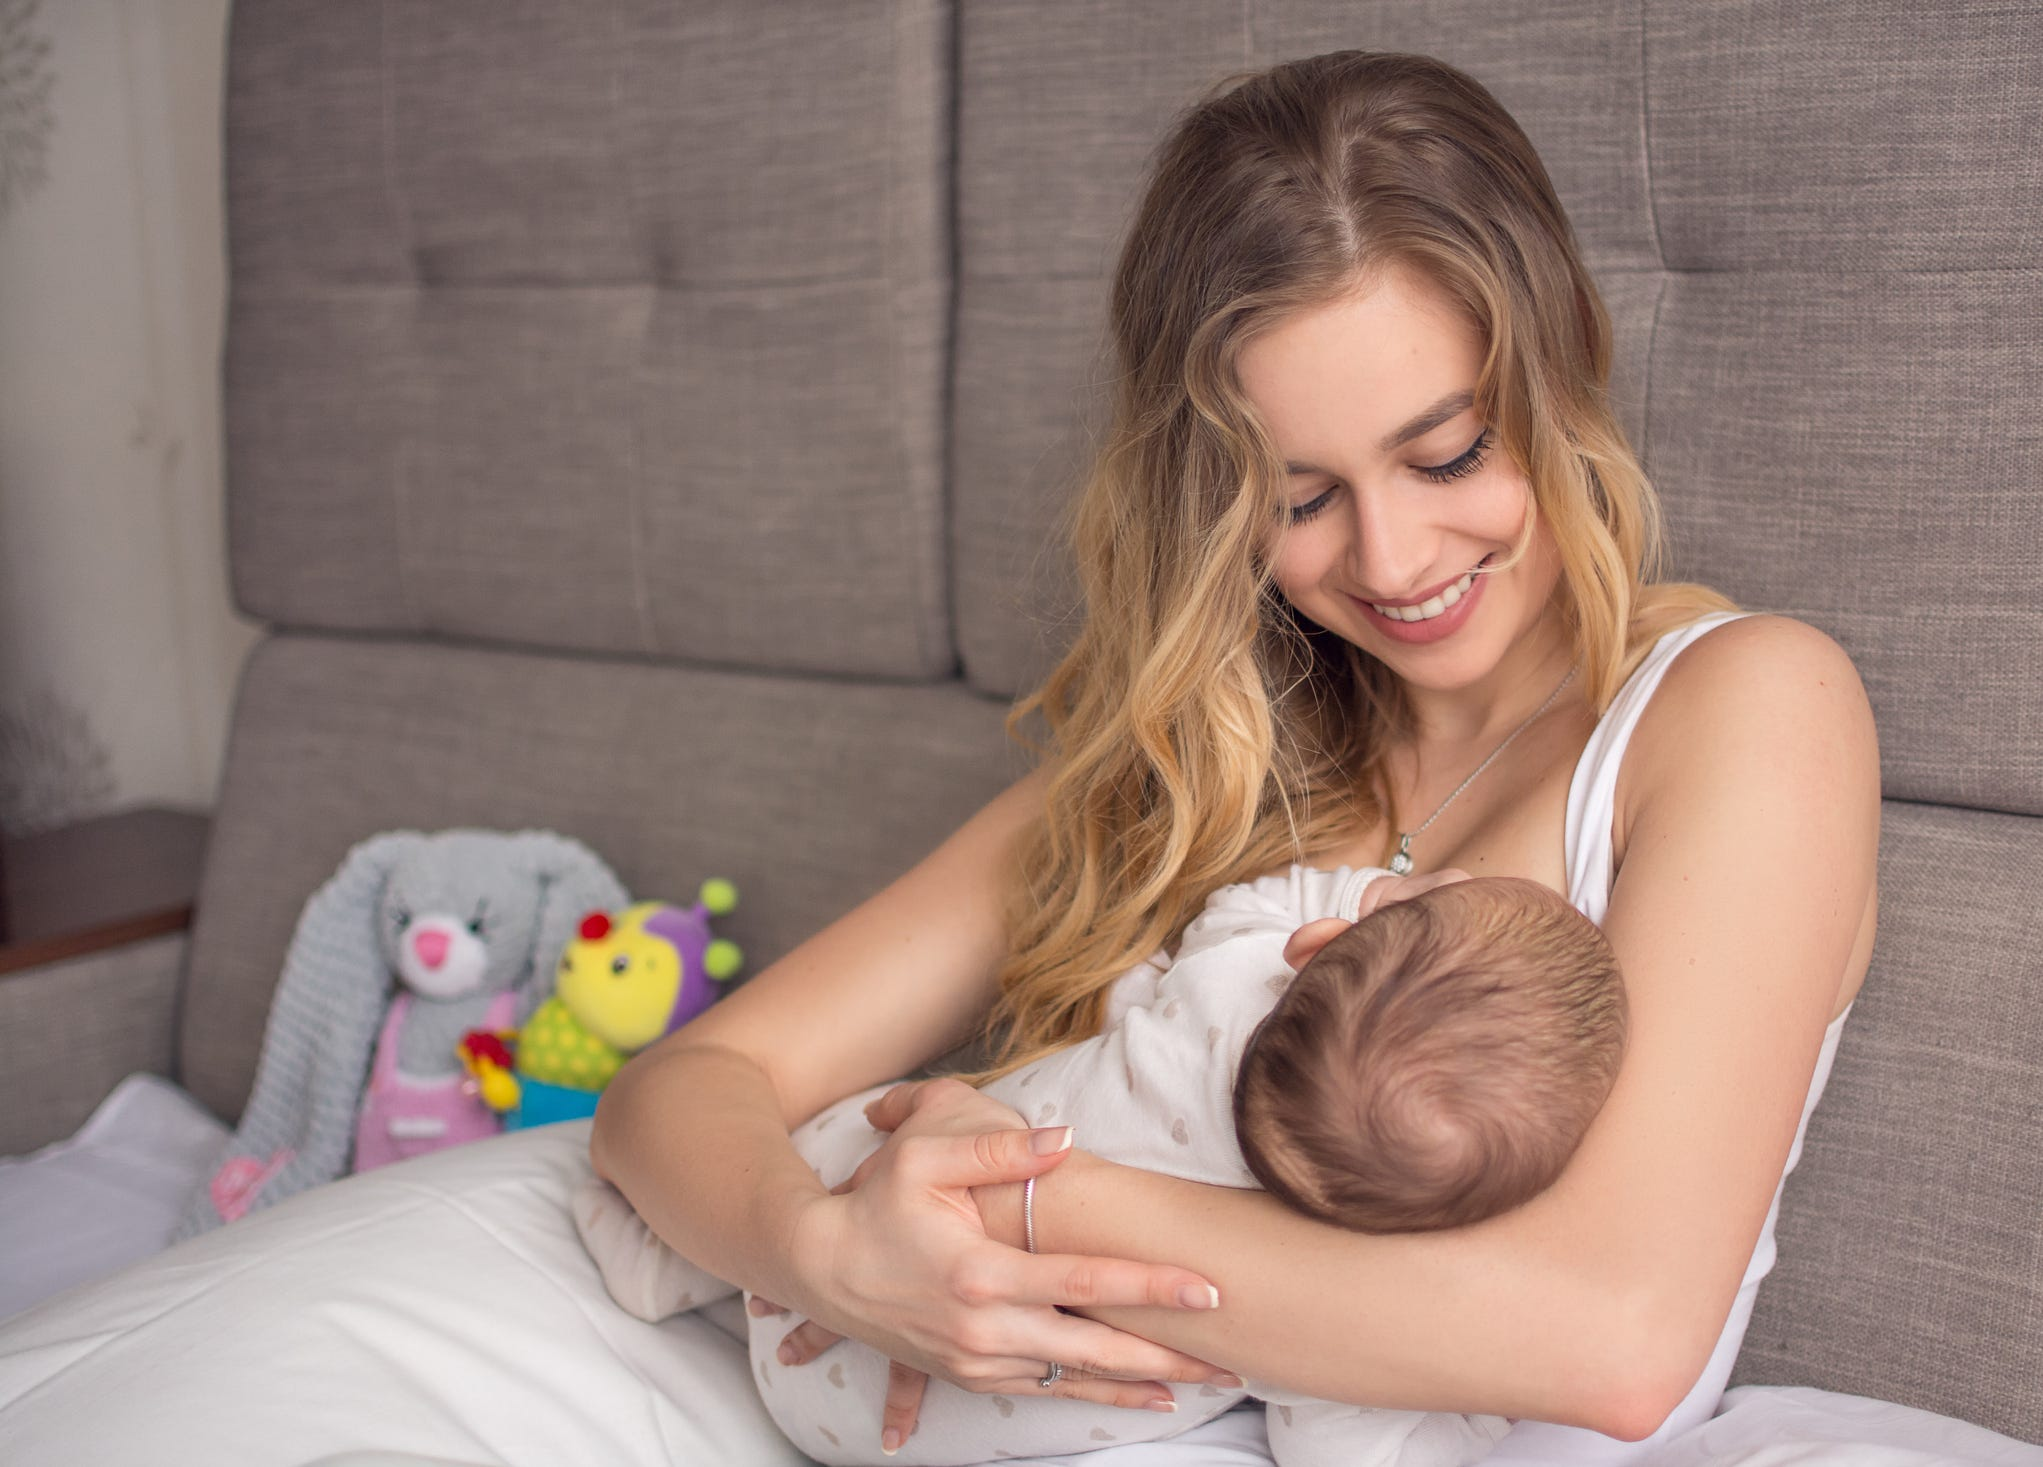 Nursing mothers are selling, donating breast milk in Facebook groups